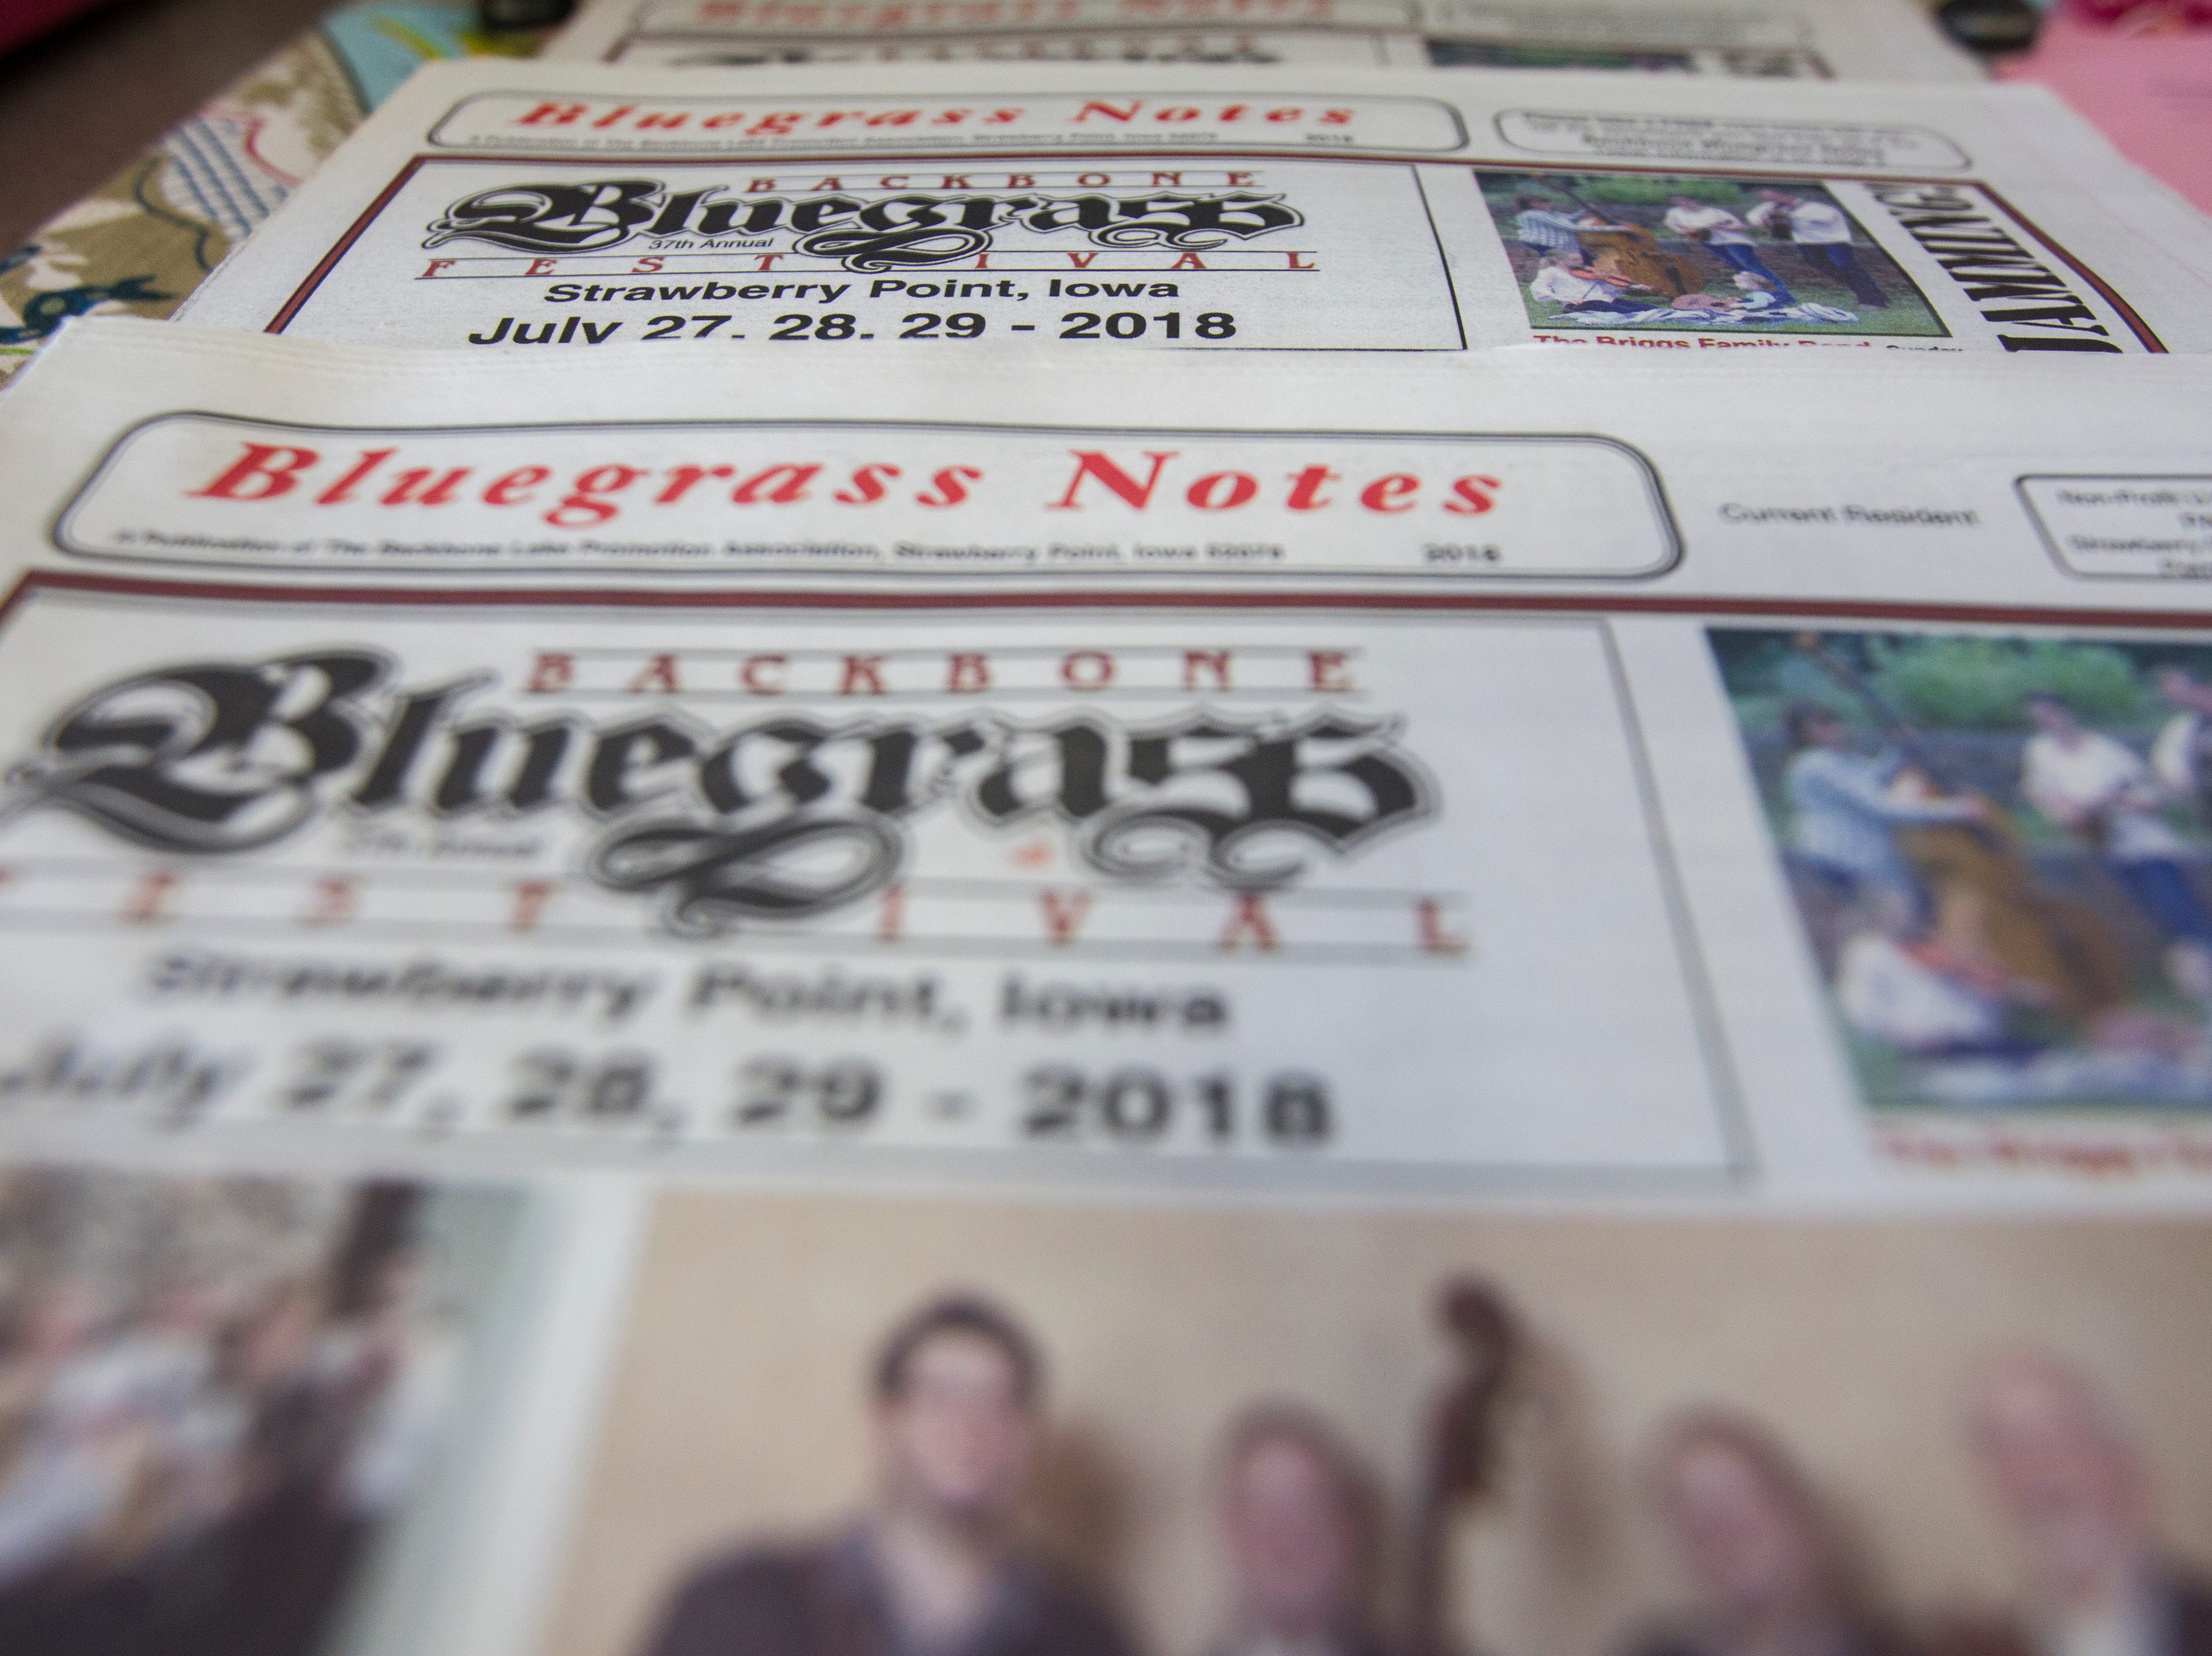 """Items are seen on a table with merchandise for the Savage Hearts trio during a free """"Learn to Jam Bluegrass Workshop"""" on Wednesday, July 25, 2018, at West Music in Coralville, Iowa. Savage was joined by the other two members of the Savage Hearts trio during the two hour workshop."""